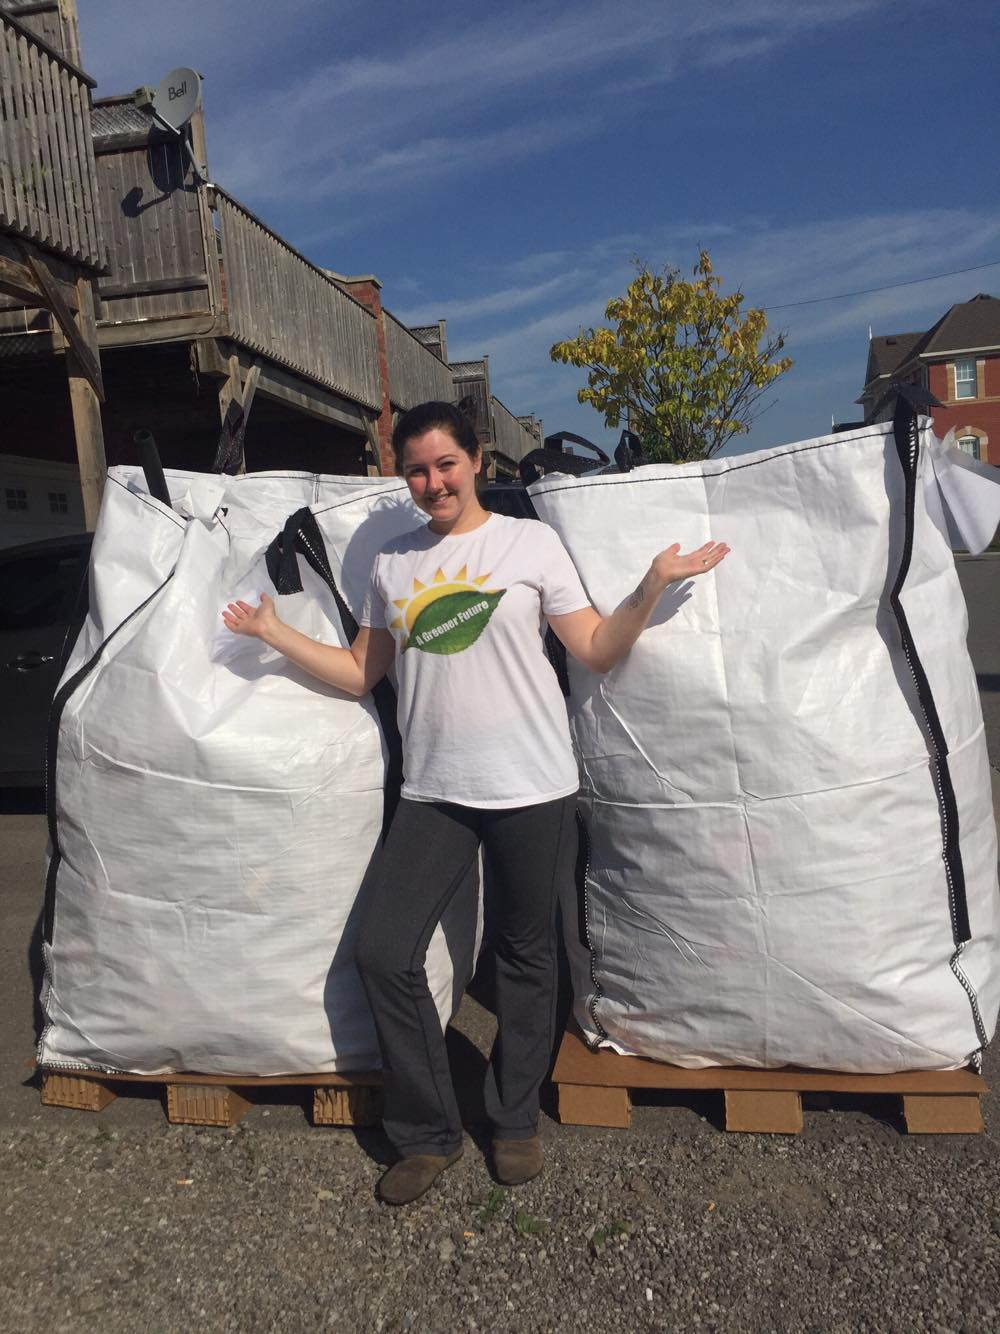 Rochelle Byrne, A Greener Future's Executive Director, with two super-sacks full of beach plastic from Love Your Lake 2017.